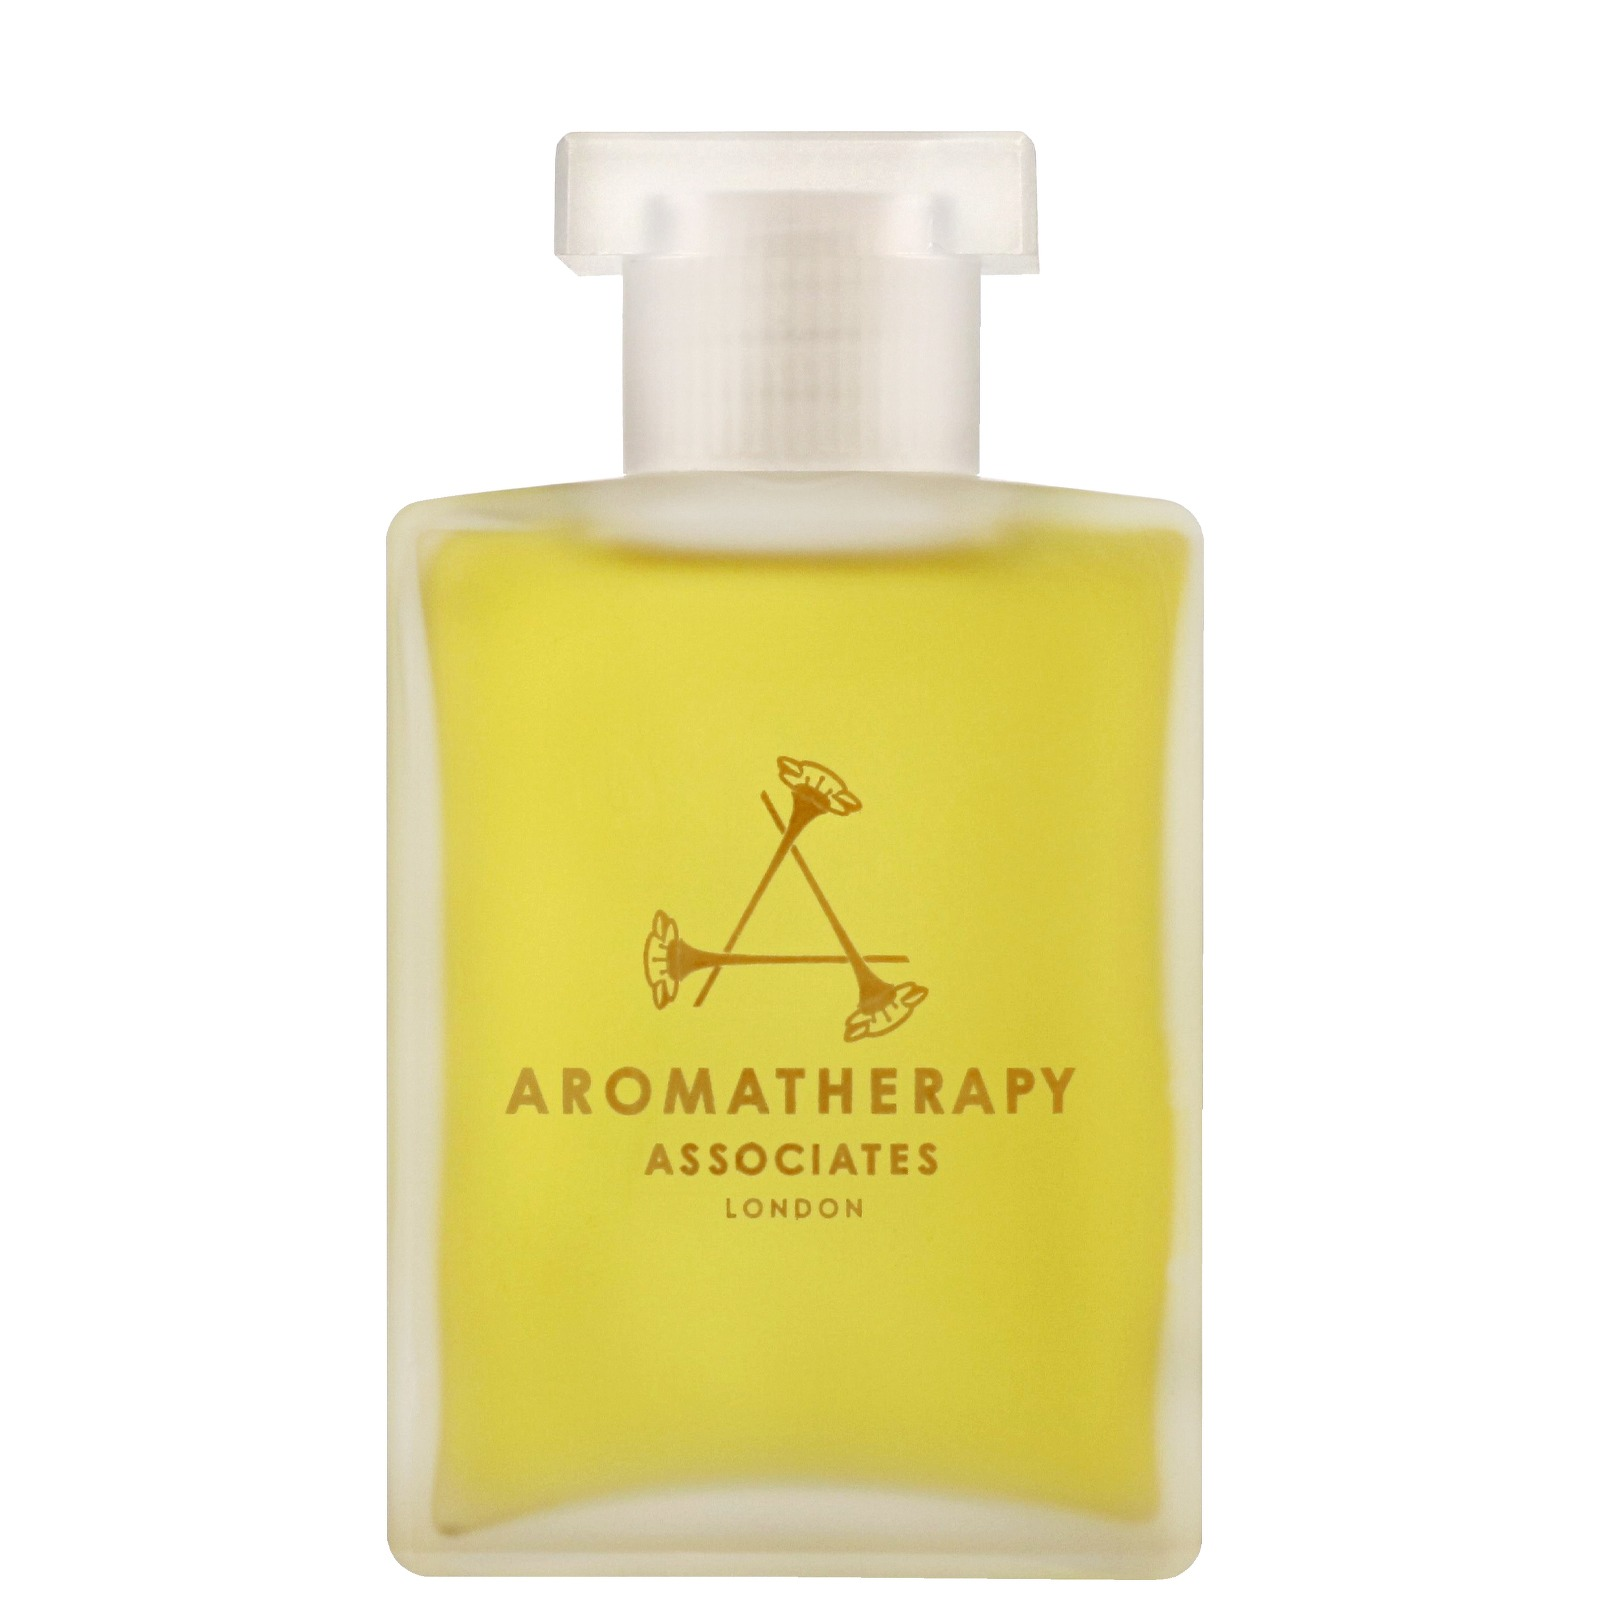 Aromatherapy Associates Bath & Body Revive Morning Bath & Shower Oil 55ml